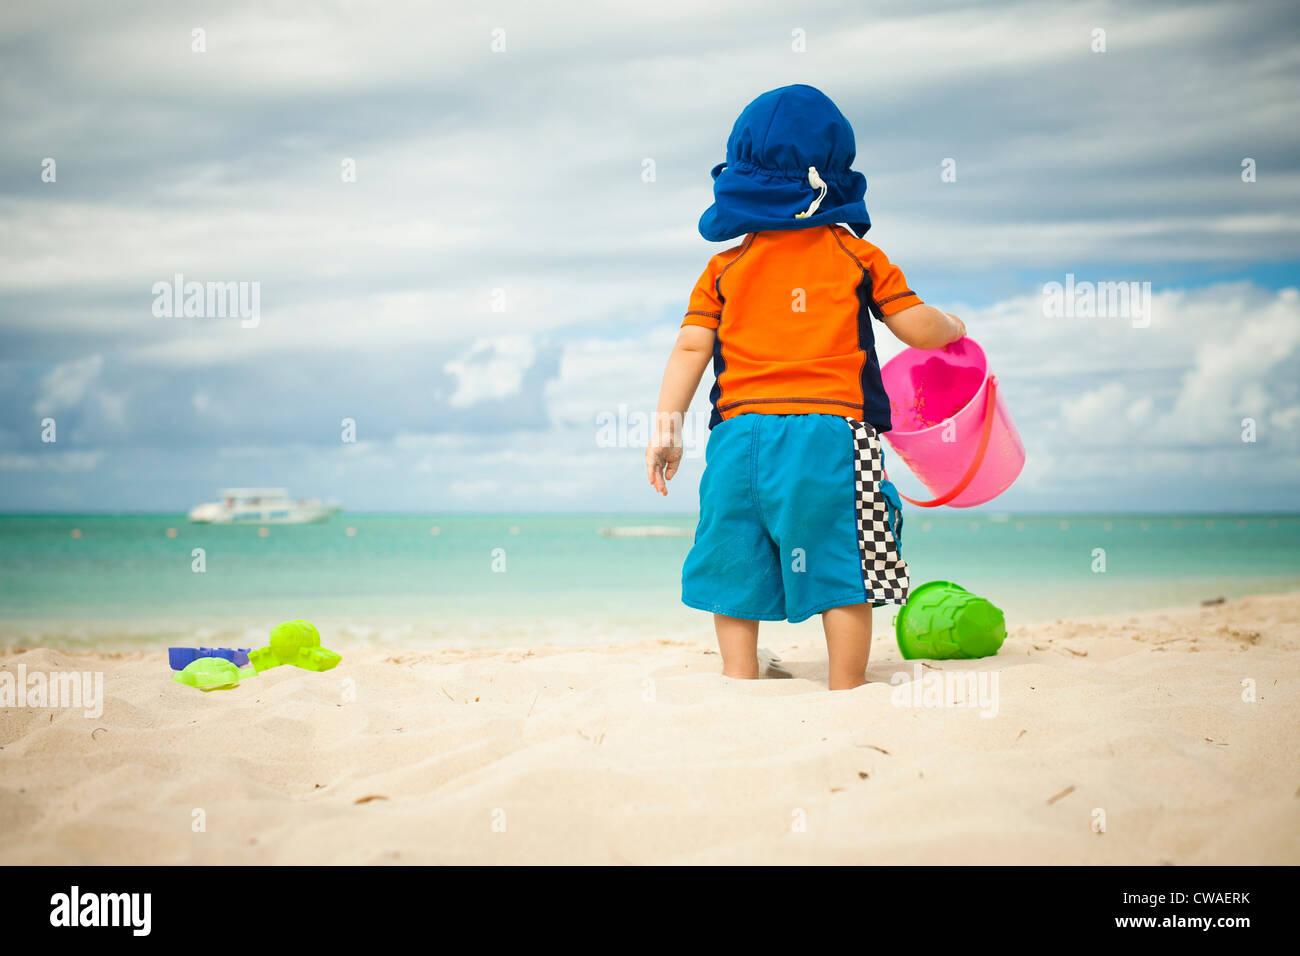 Little boy at the beach - Stock Image